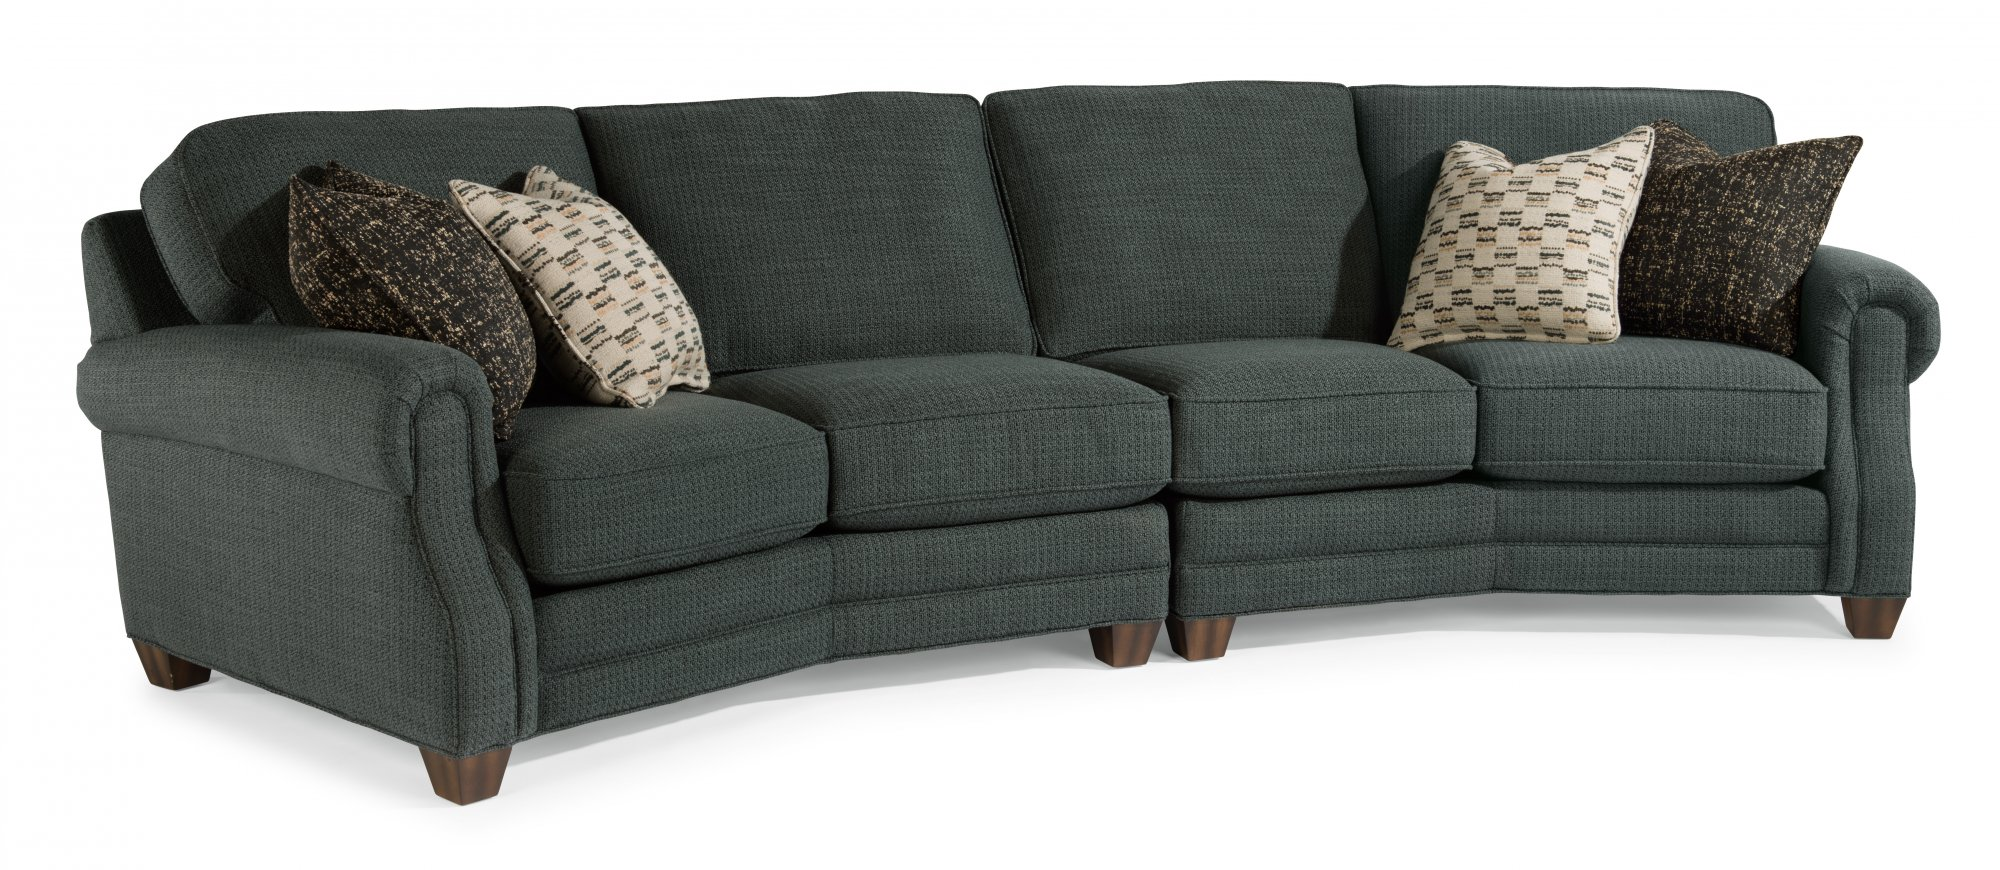 Lovely Curved Conversation Sofas Ezhandui Com